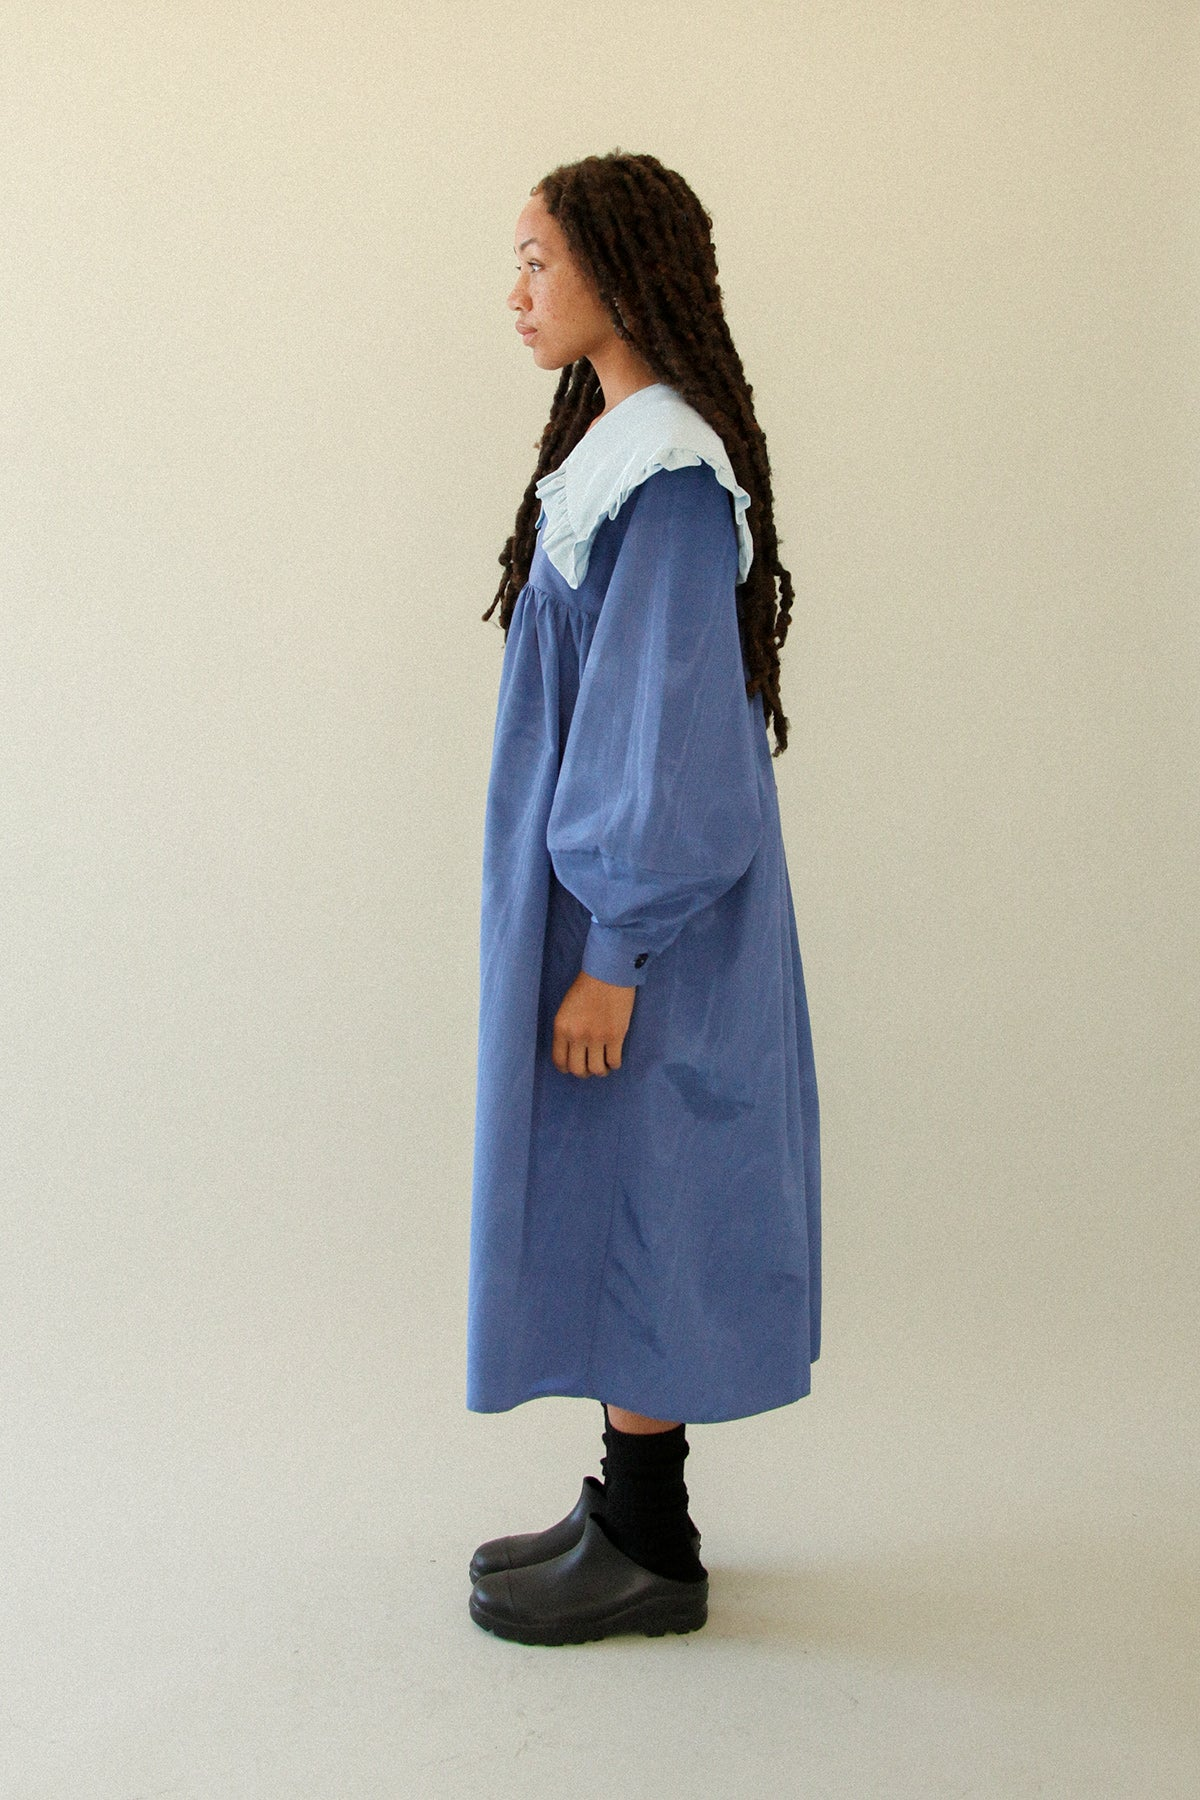 Sailor Dress in Mixed Sky